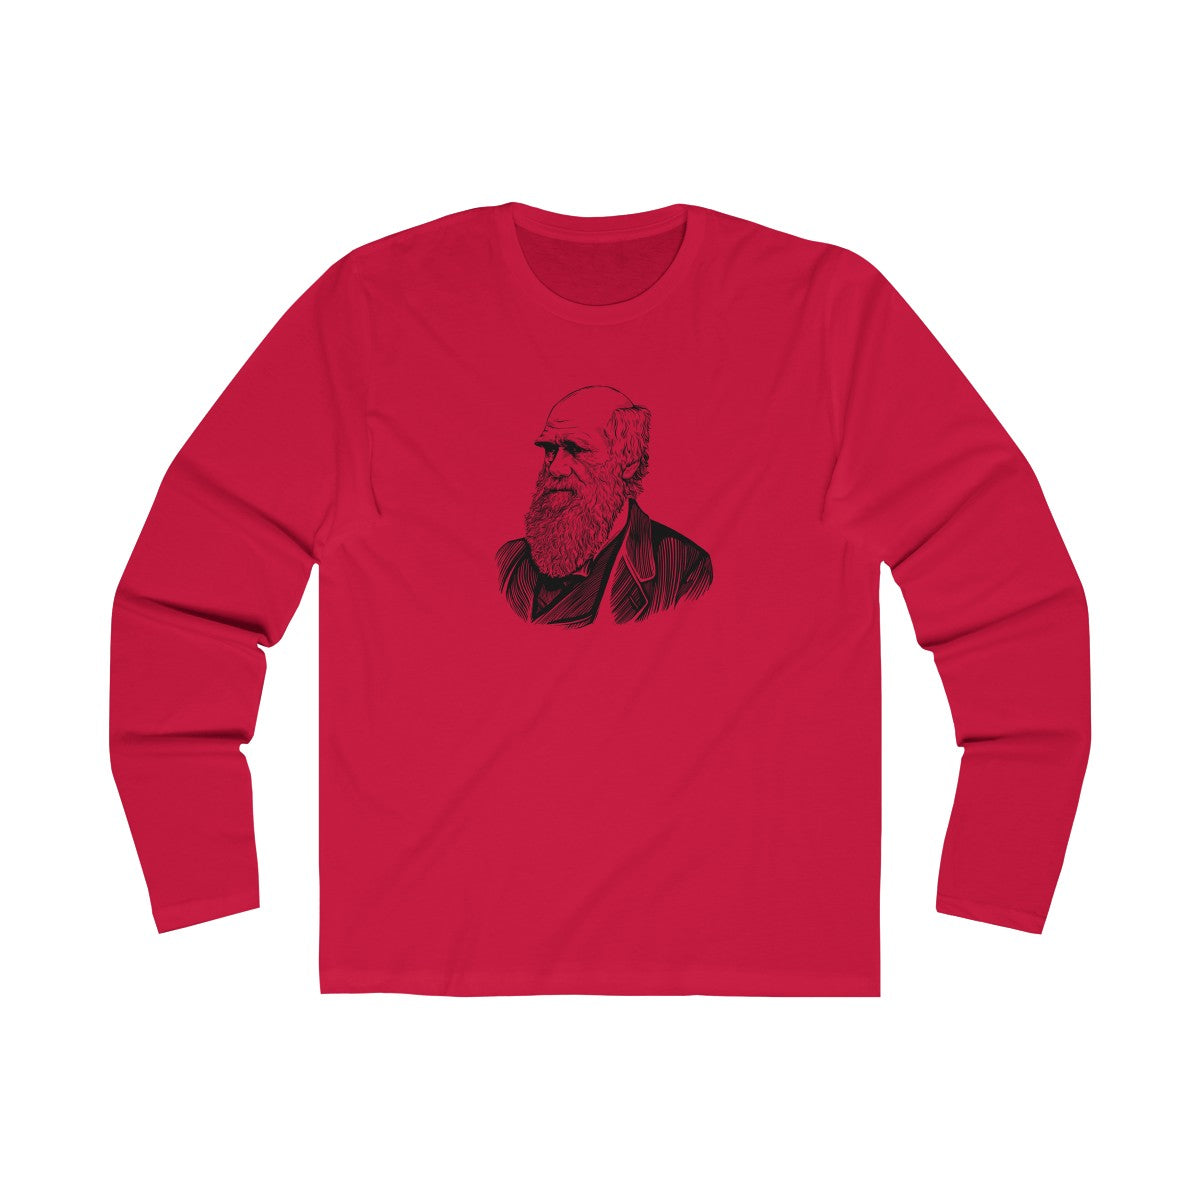 Charles Darwin Long Sleeve Crew T-Shirt - Biblioriot